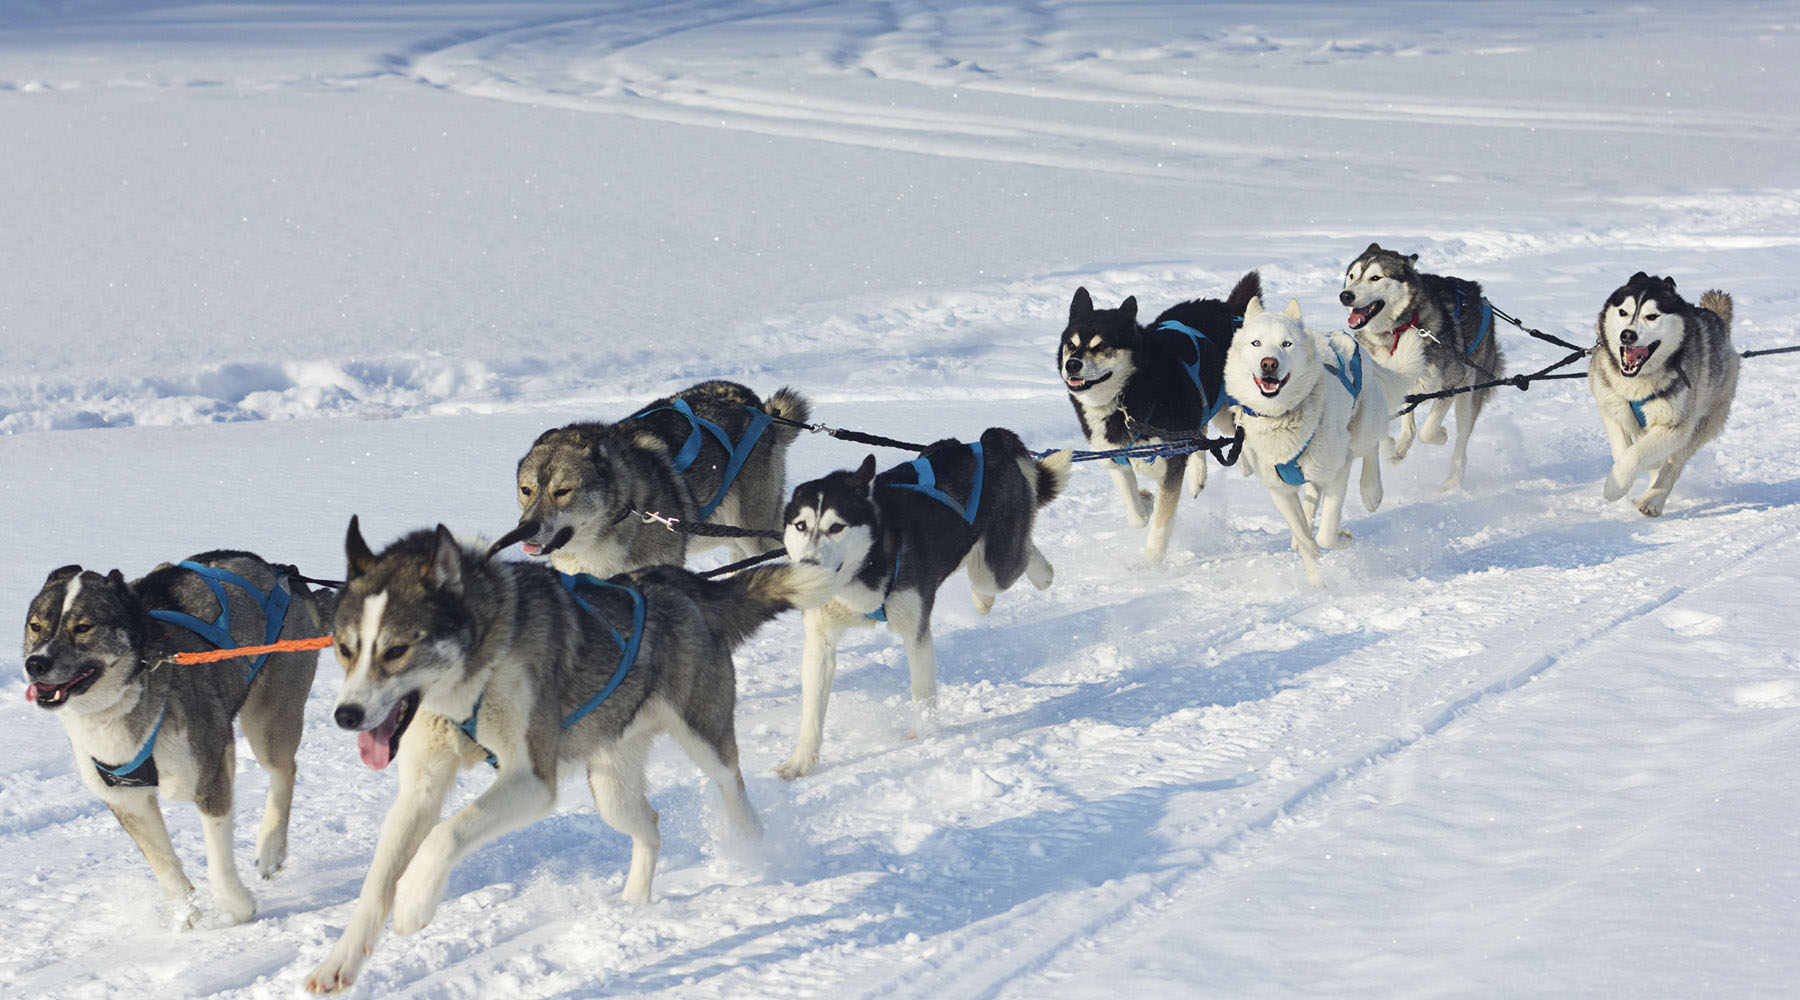 Iditarod Huskies, Antique Cars and Alaska Wilds (Pre-Voyage)